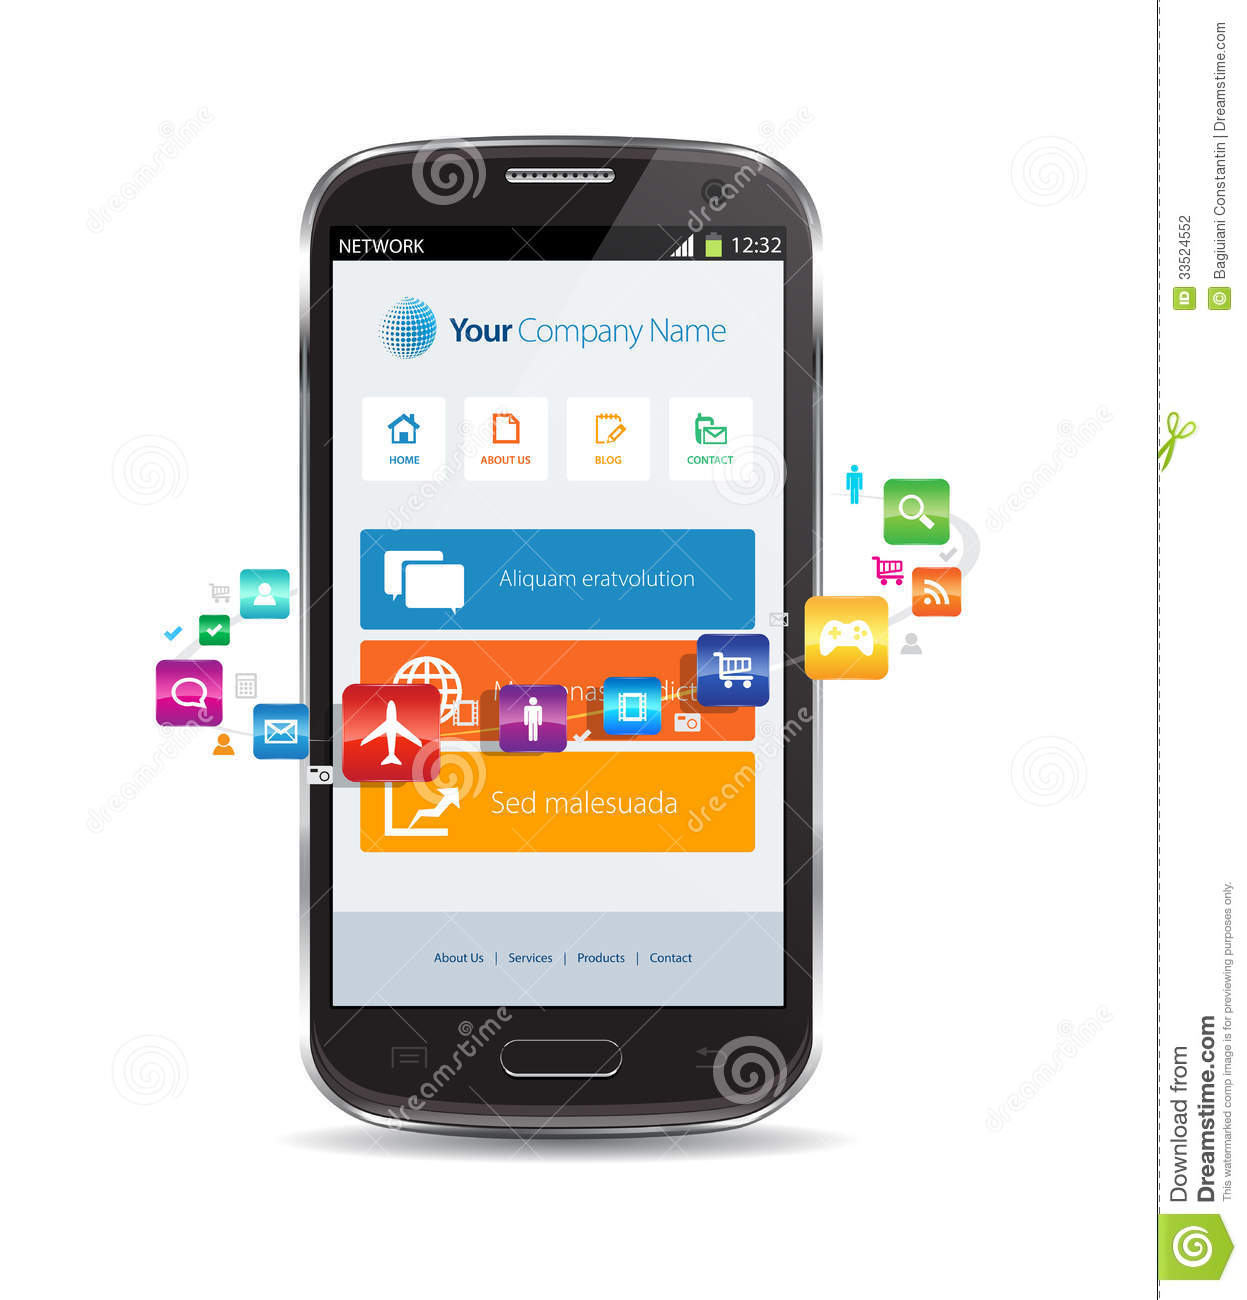 Our App Business Plan Experience